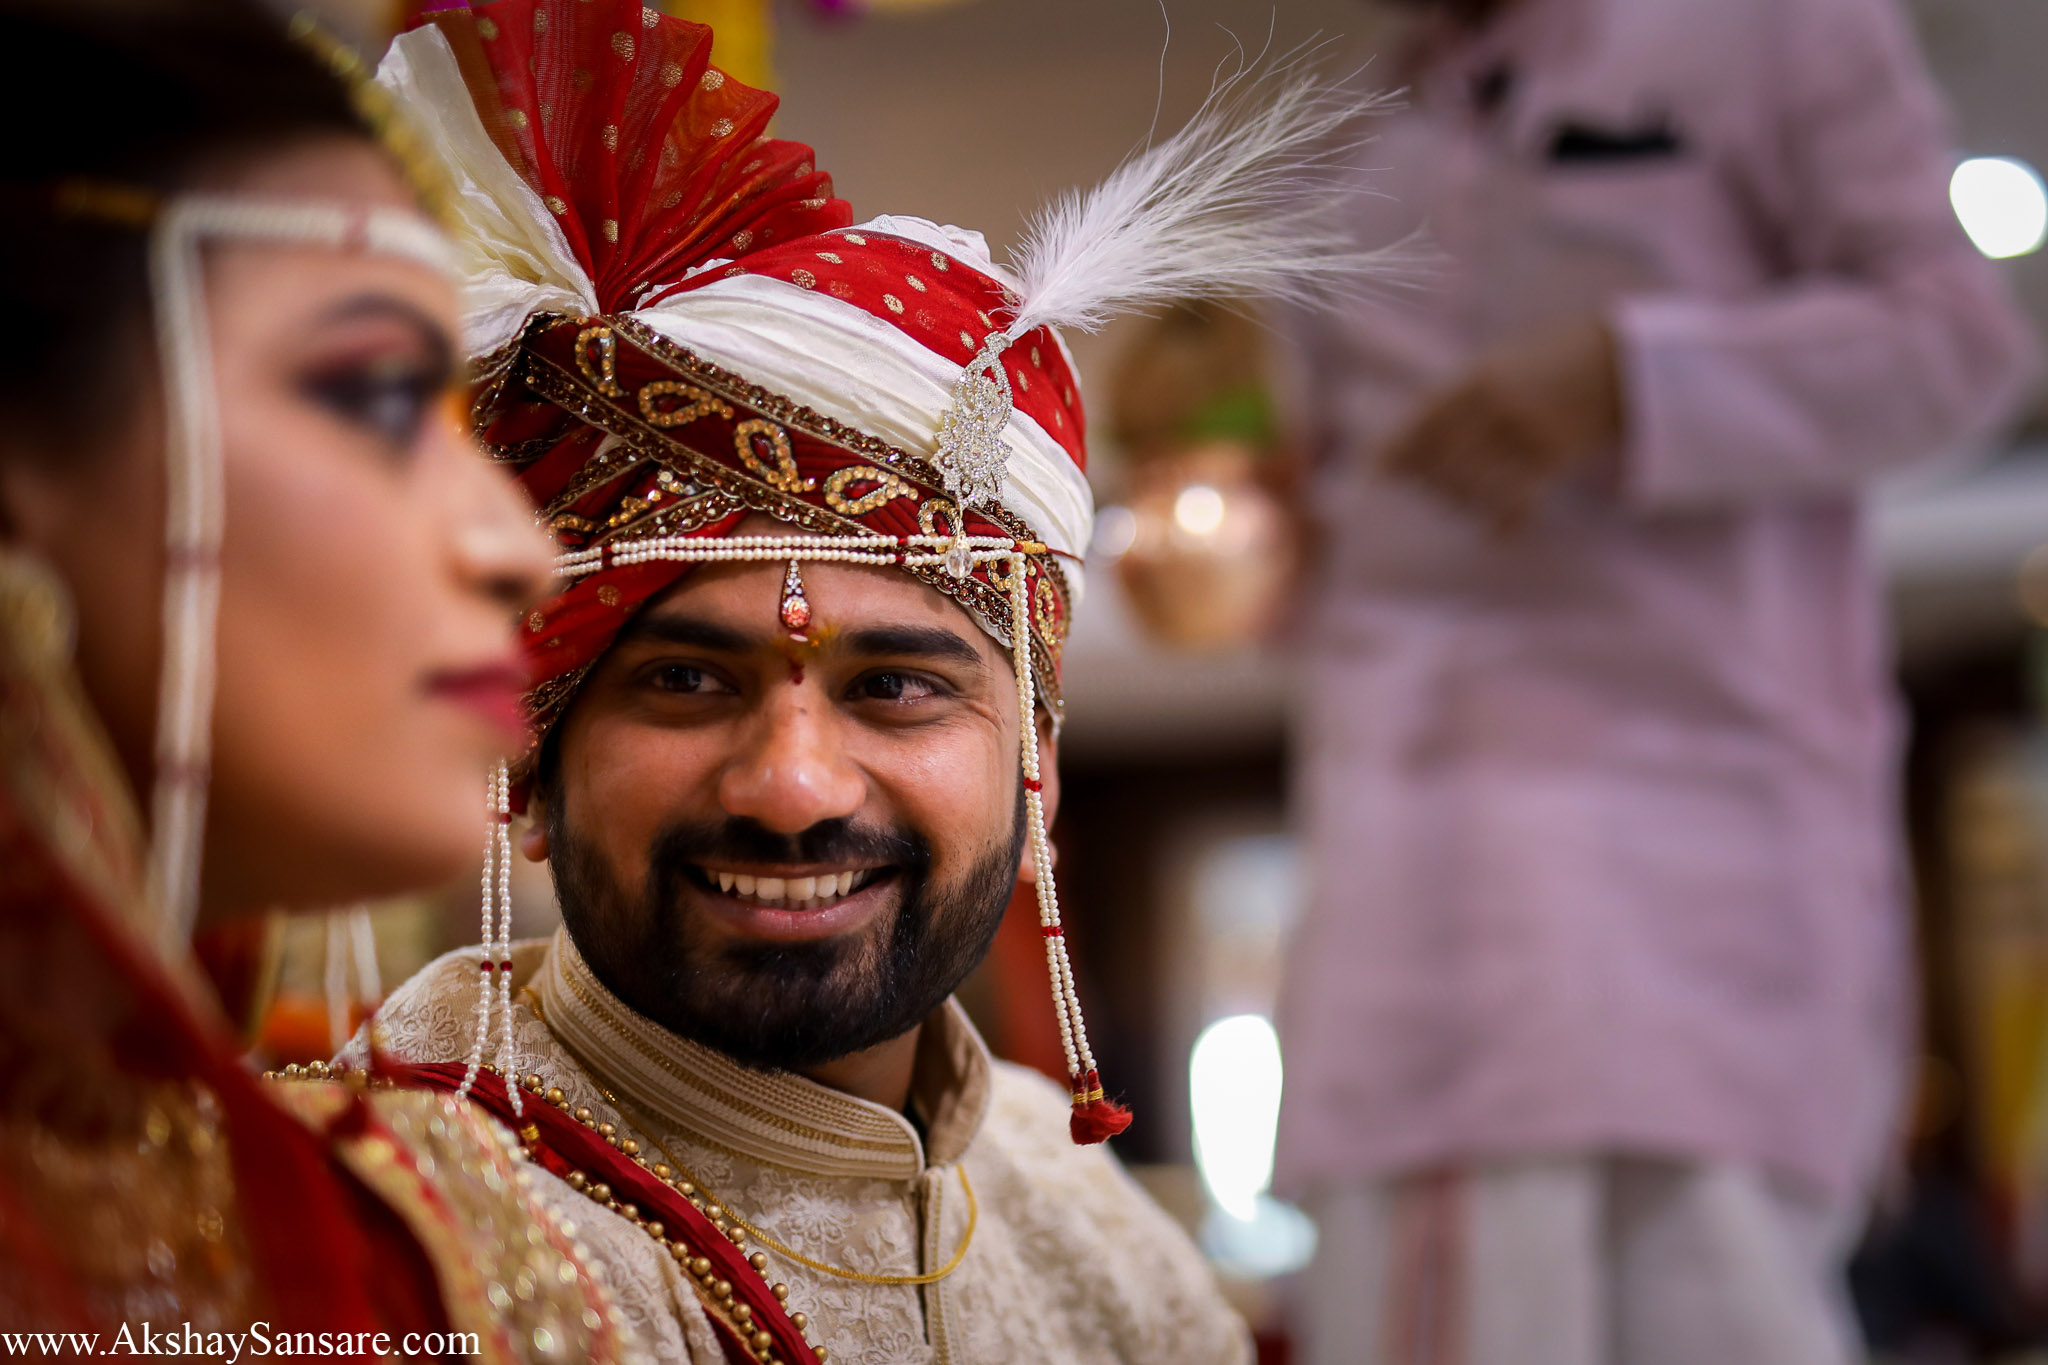 Ajay & Devika Akshay Sansare Photography Best Candid wedding photographer in mumbai india11.jpg